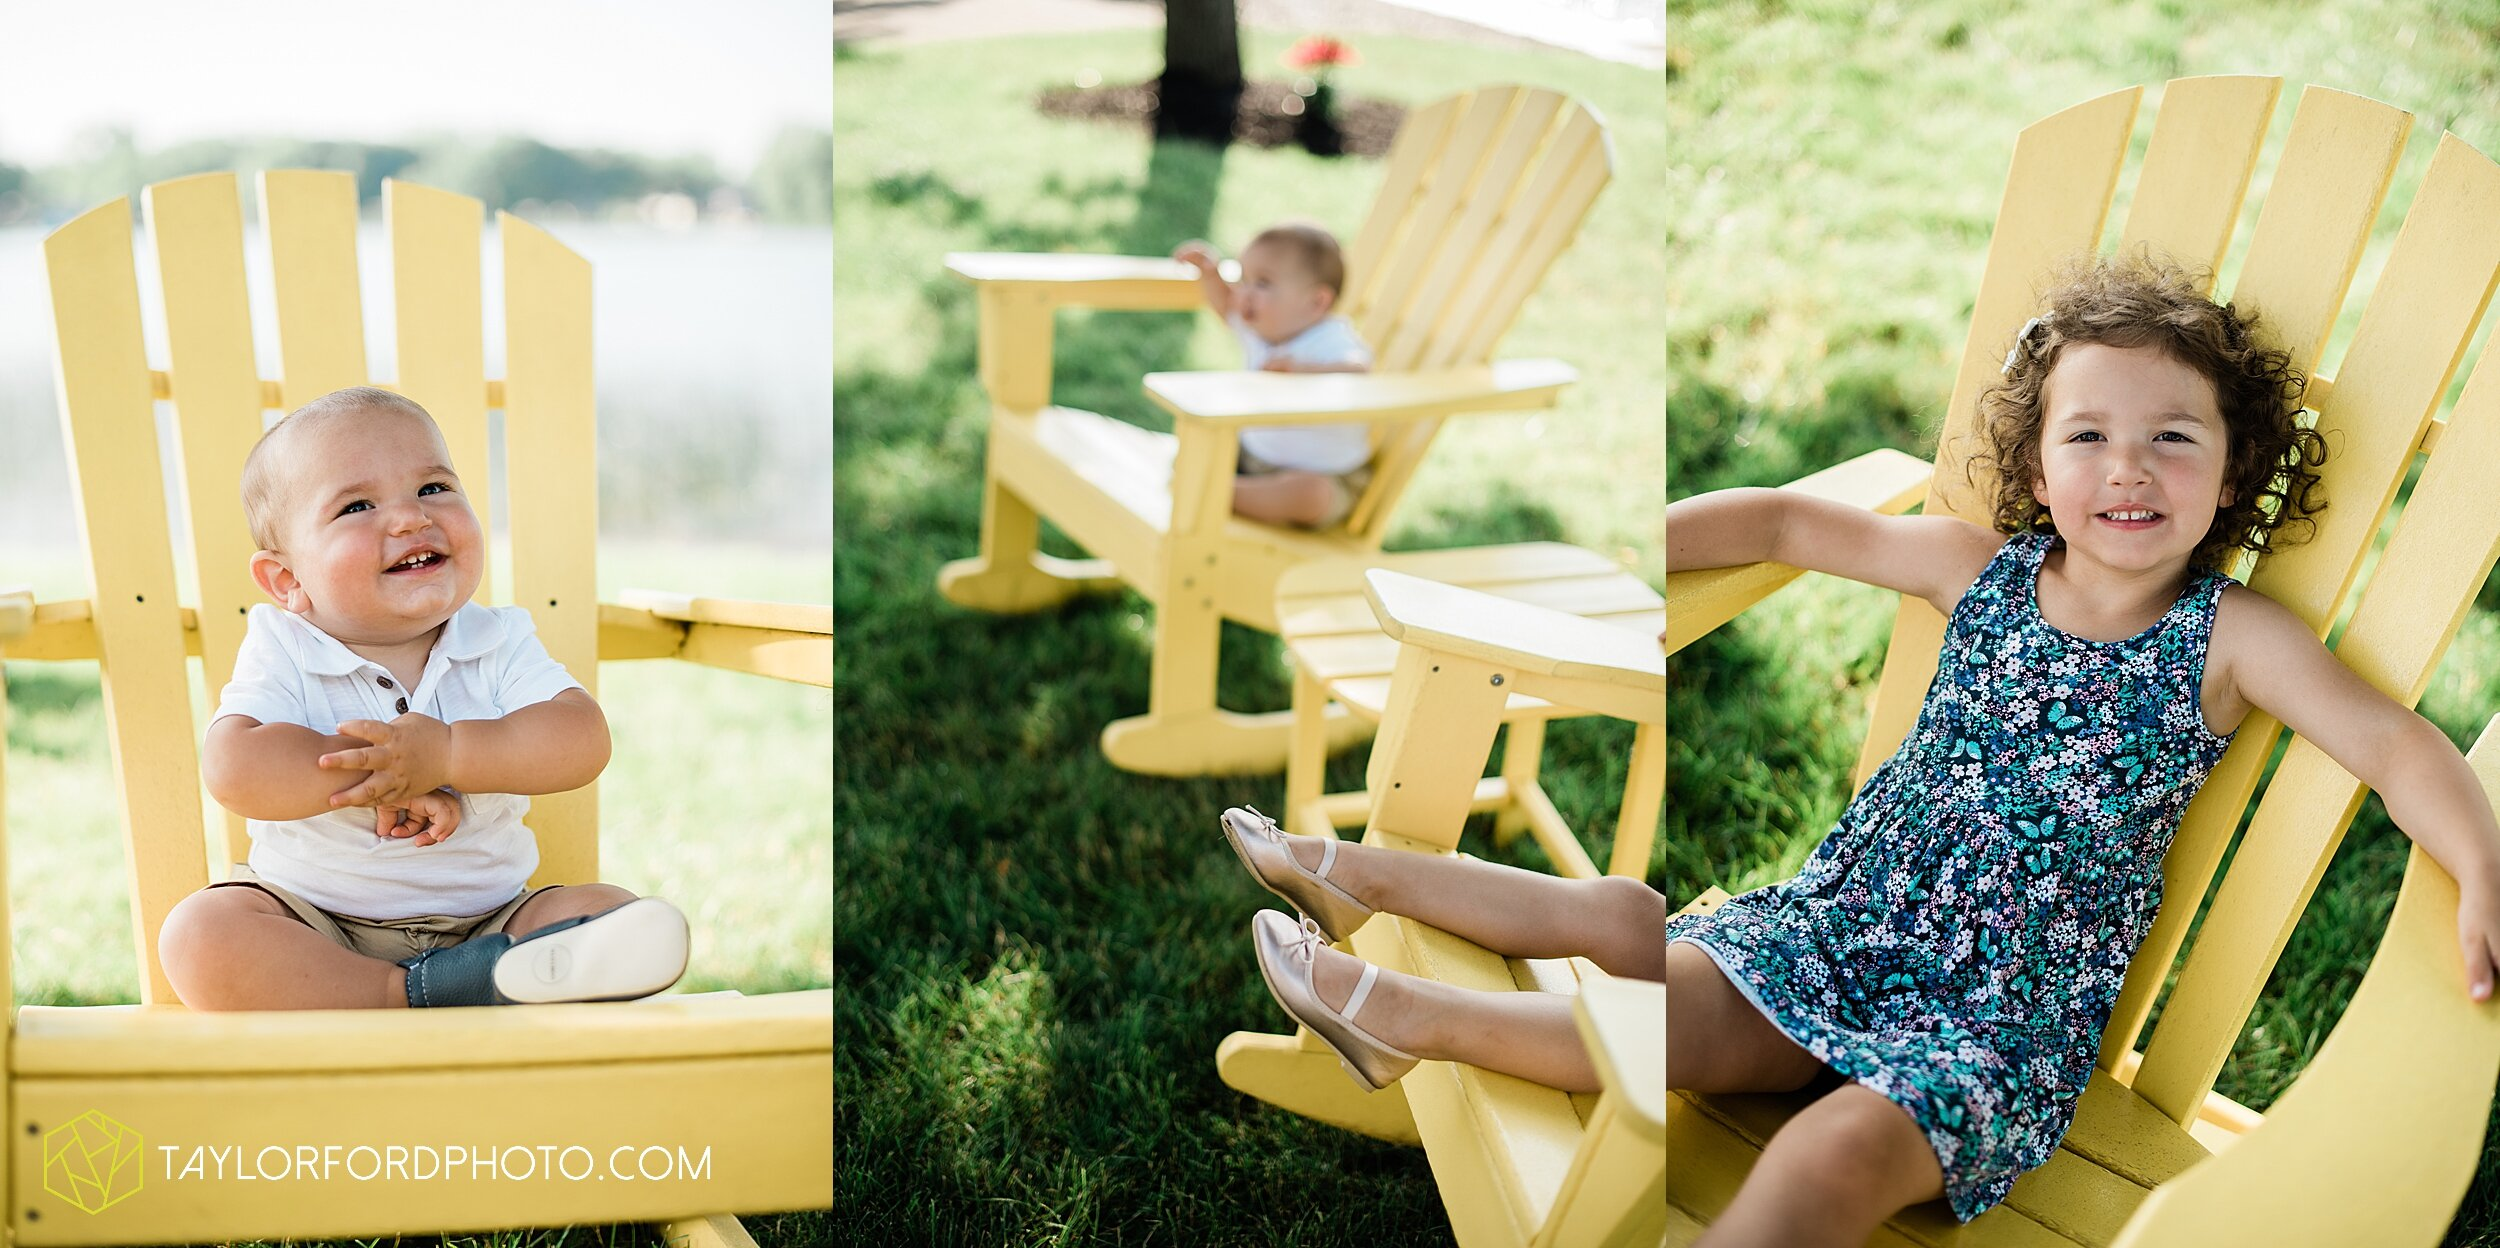 lake-wawasee-syracuse-indiana-oakwood-resort-family-mini-fourth-4th-of-july-summer-photography-taylor-ford-hirschy-photographer_3639.jpg